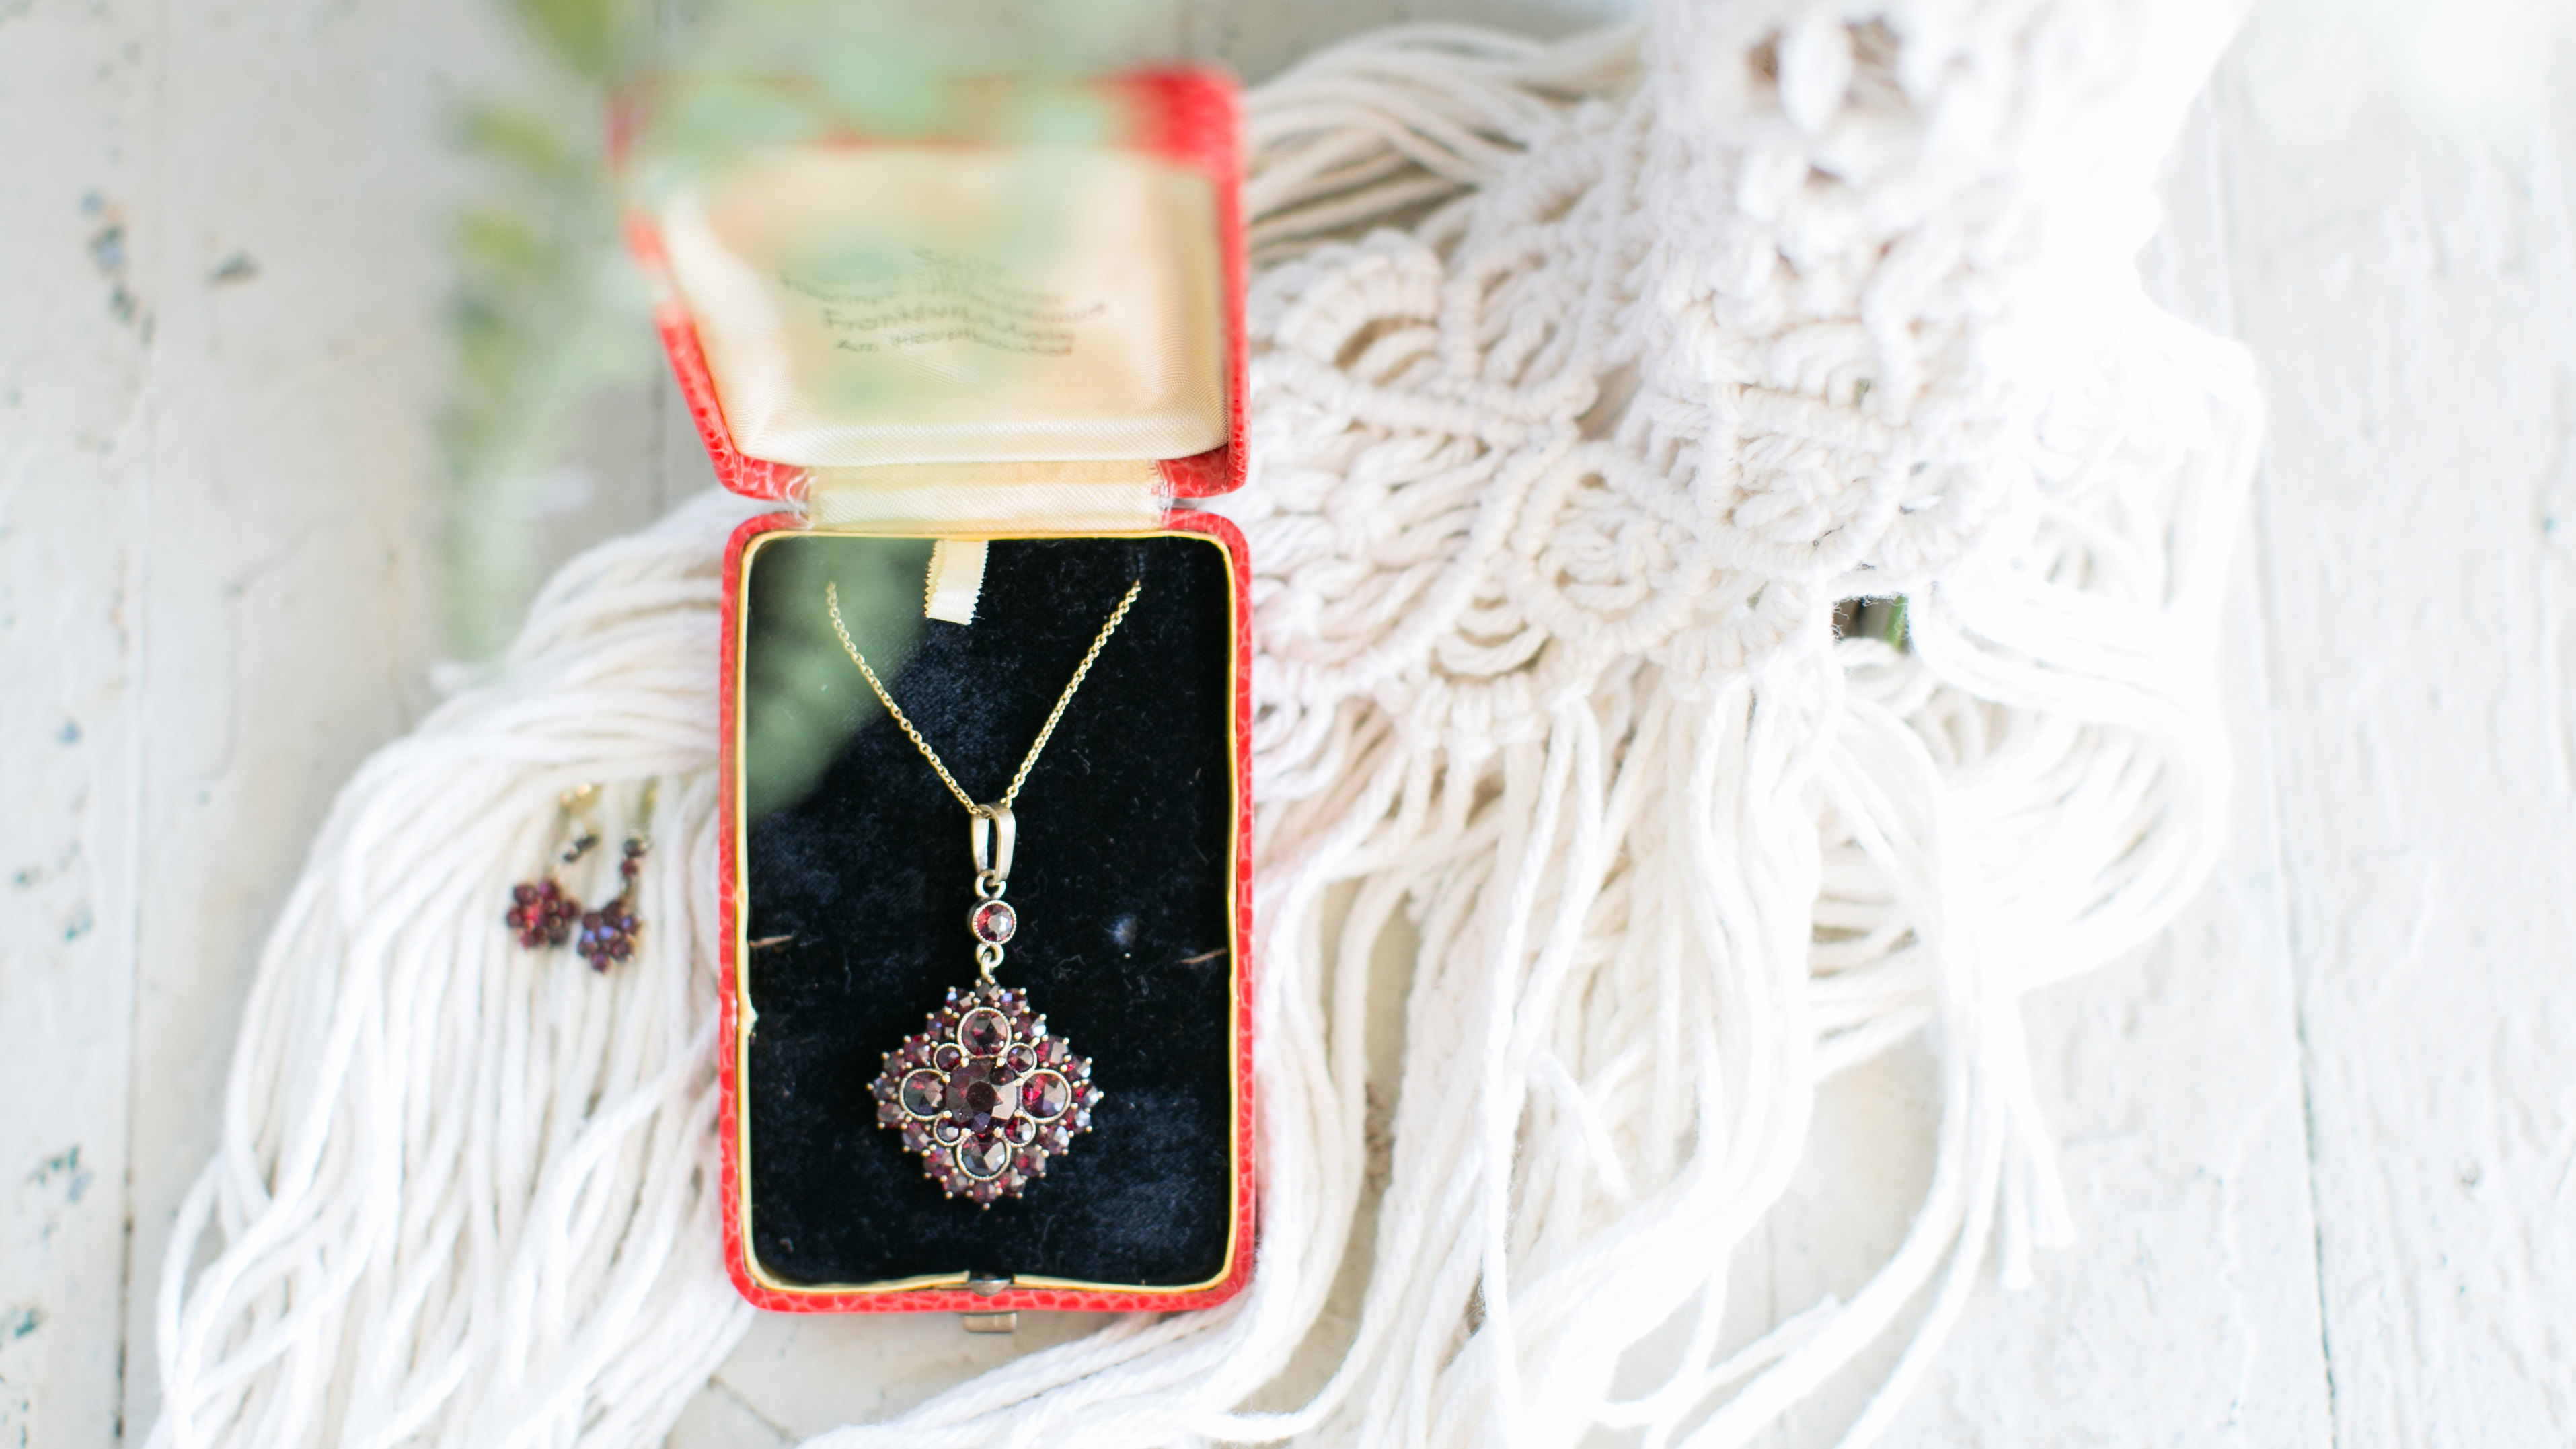 boho_wedding_virginia_beach_jessica_ryan_photography_virginia_heirloom_jewelery